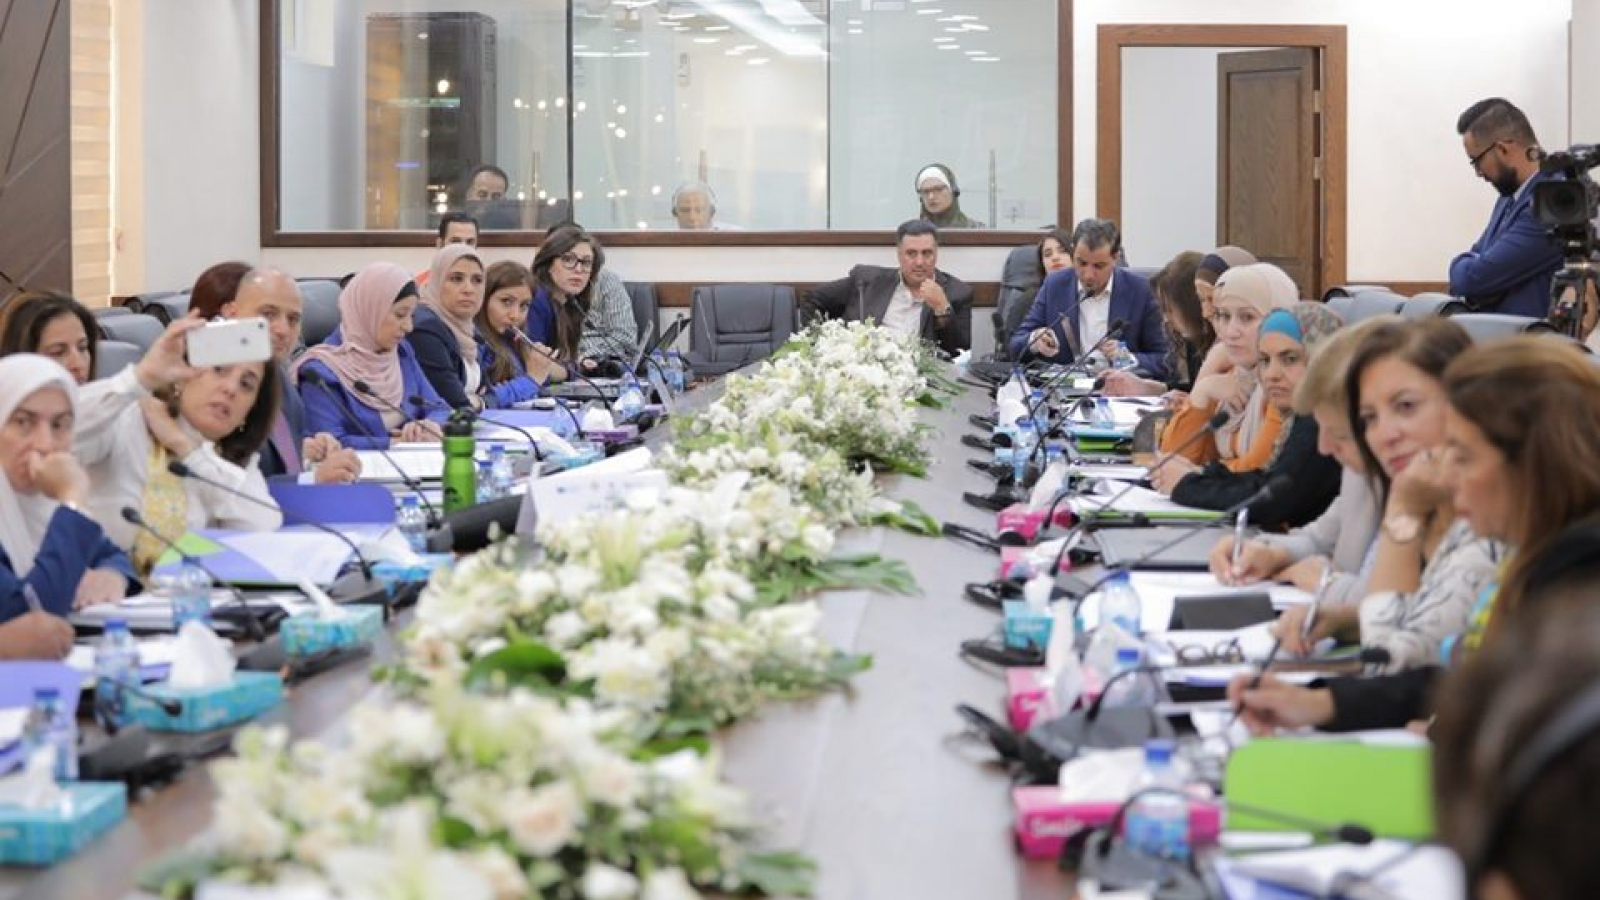 EU-funded national roundtable in Jordan: concrete steps and recommendations towards increasing women's economic participation